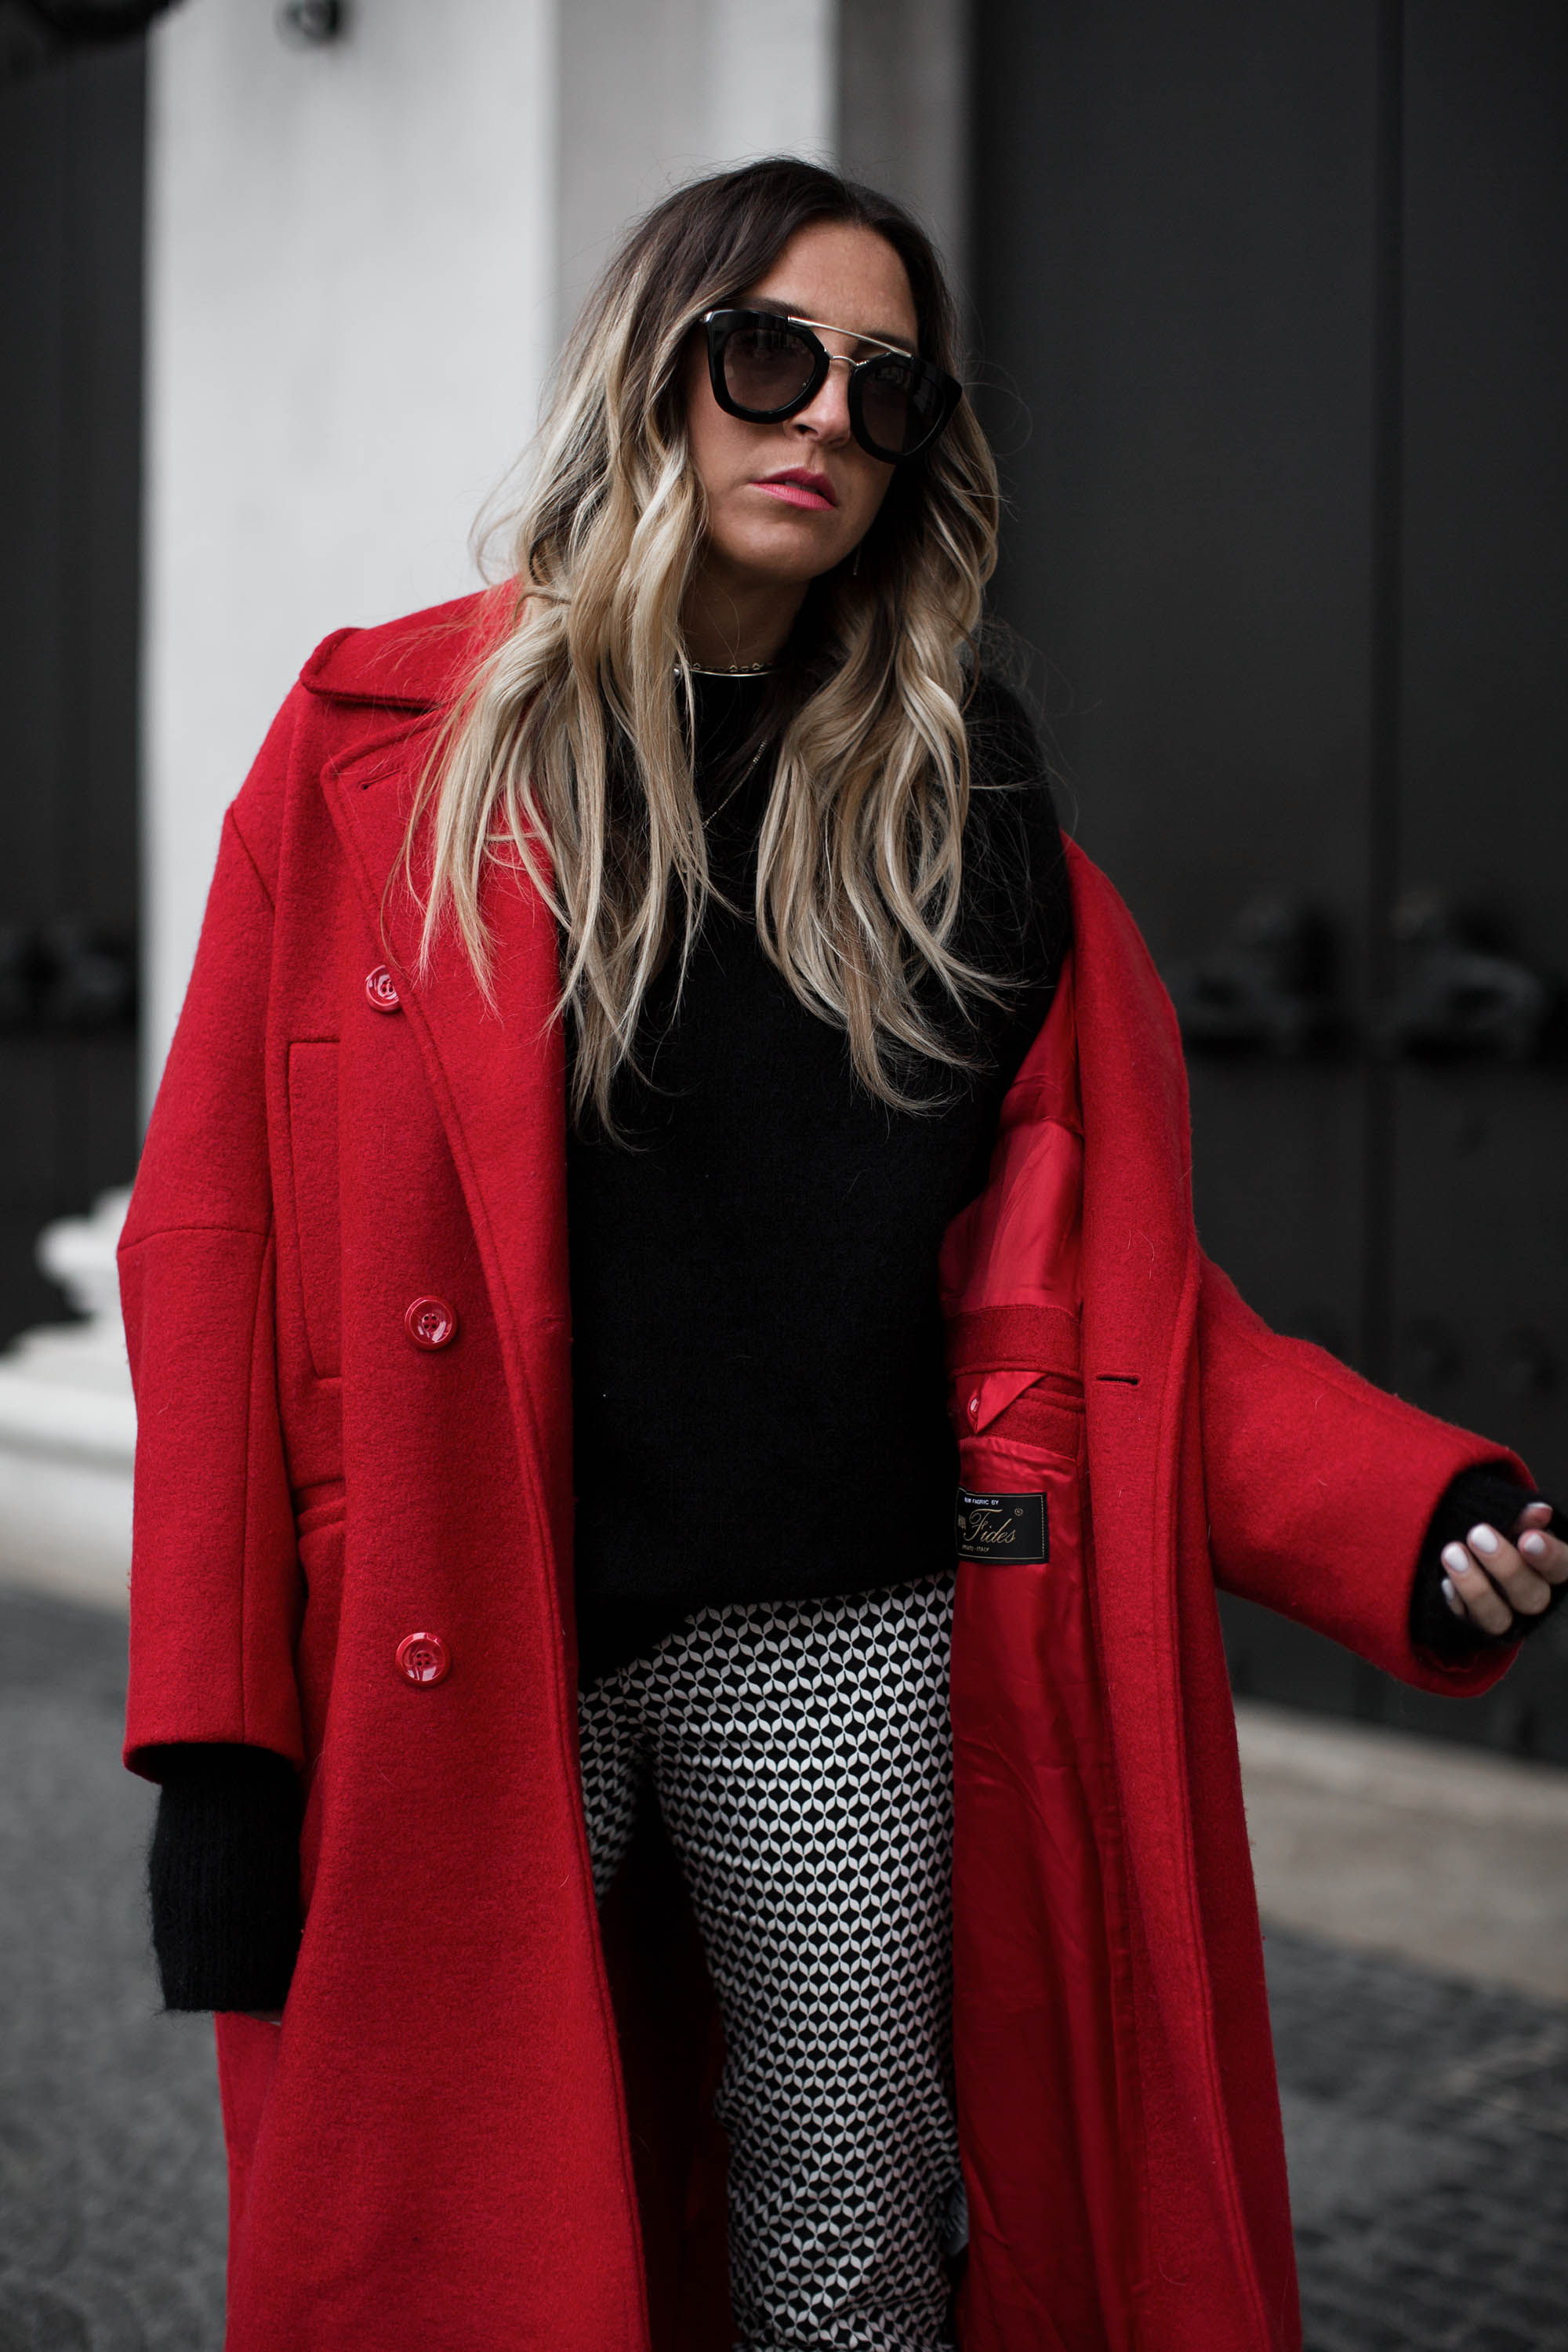 black-palms-hm-roter-mantel-boots-edited-streestyle-fashionblog-7